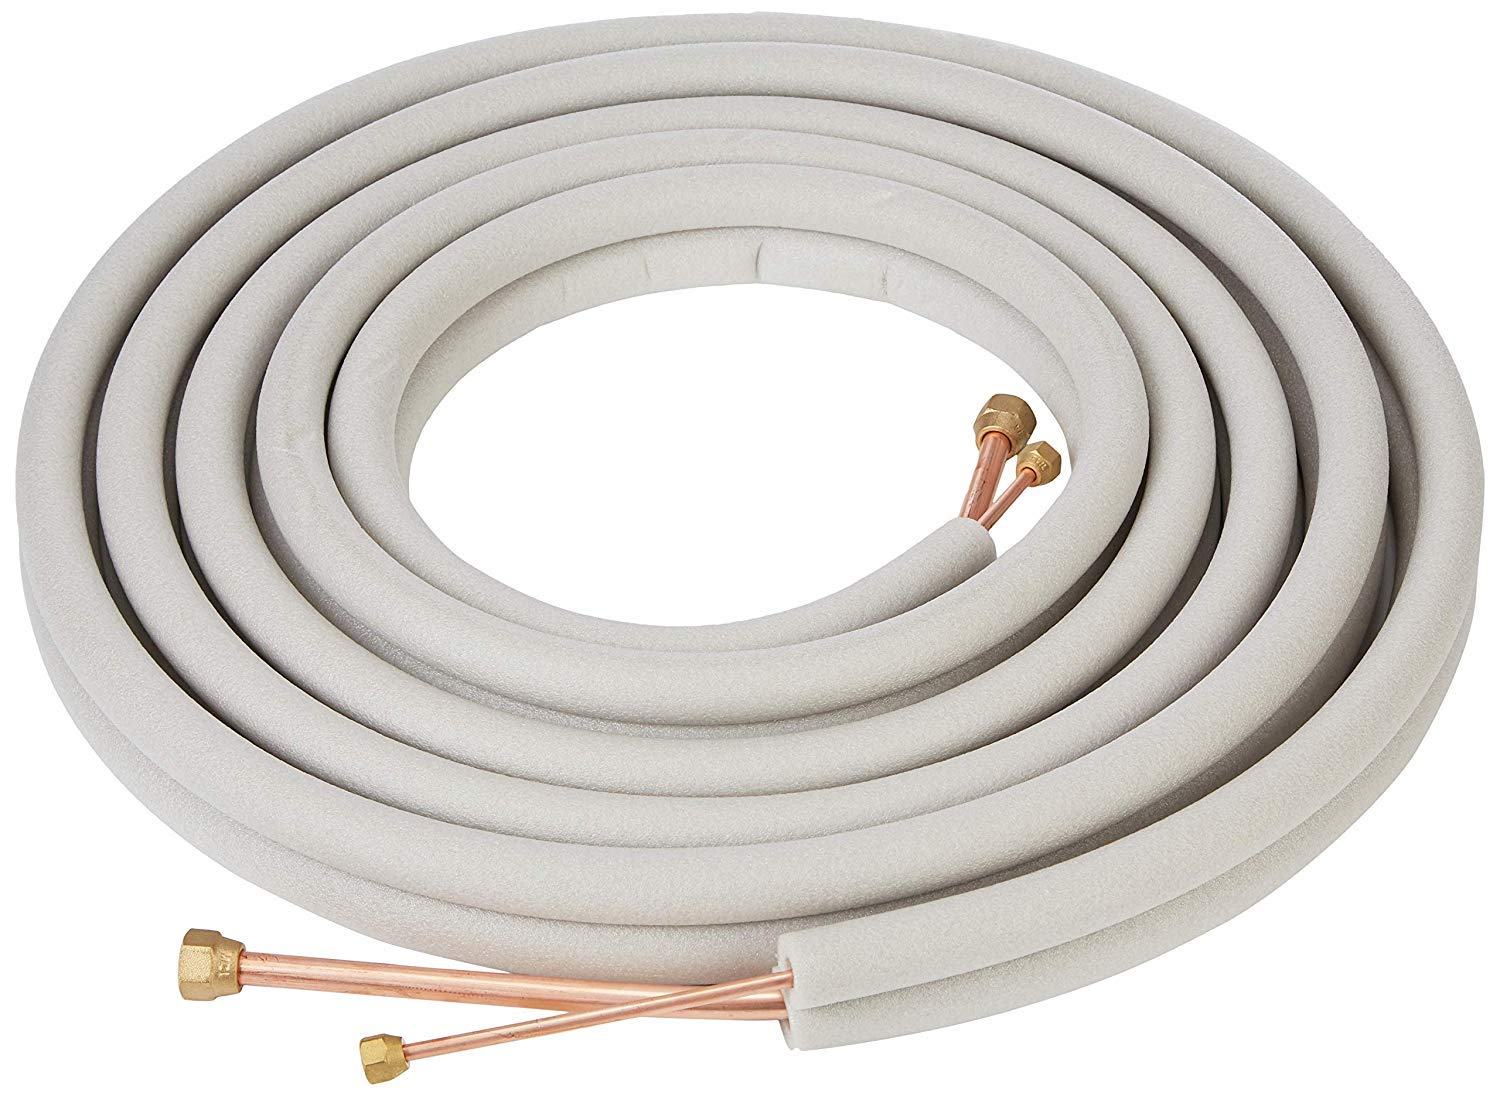 Senville 25 Ft. Copper Pipes for Mini Split Air Conditioner 1/4'' & 3/8'' White by Senville